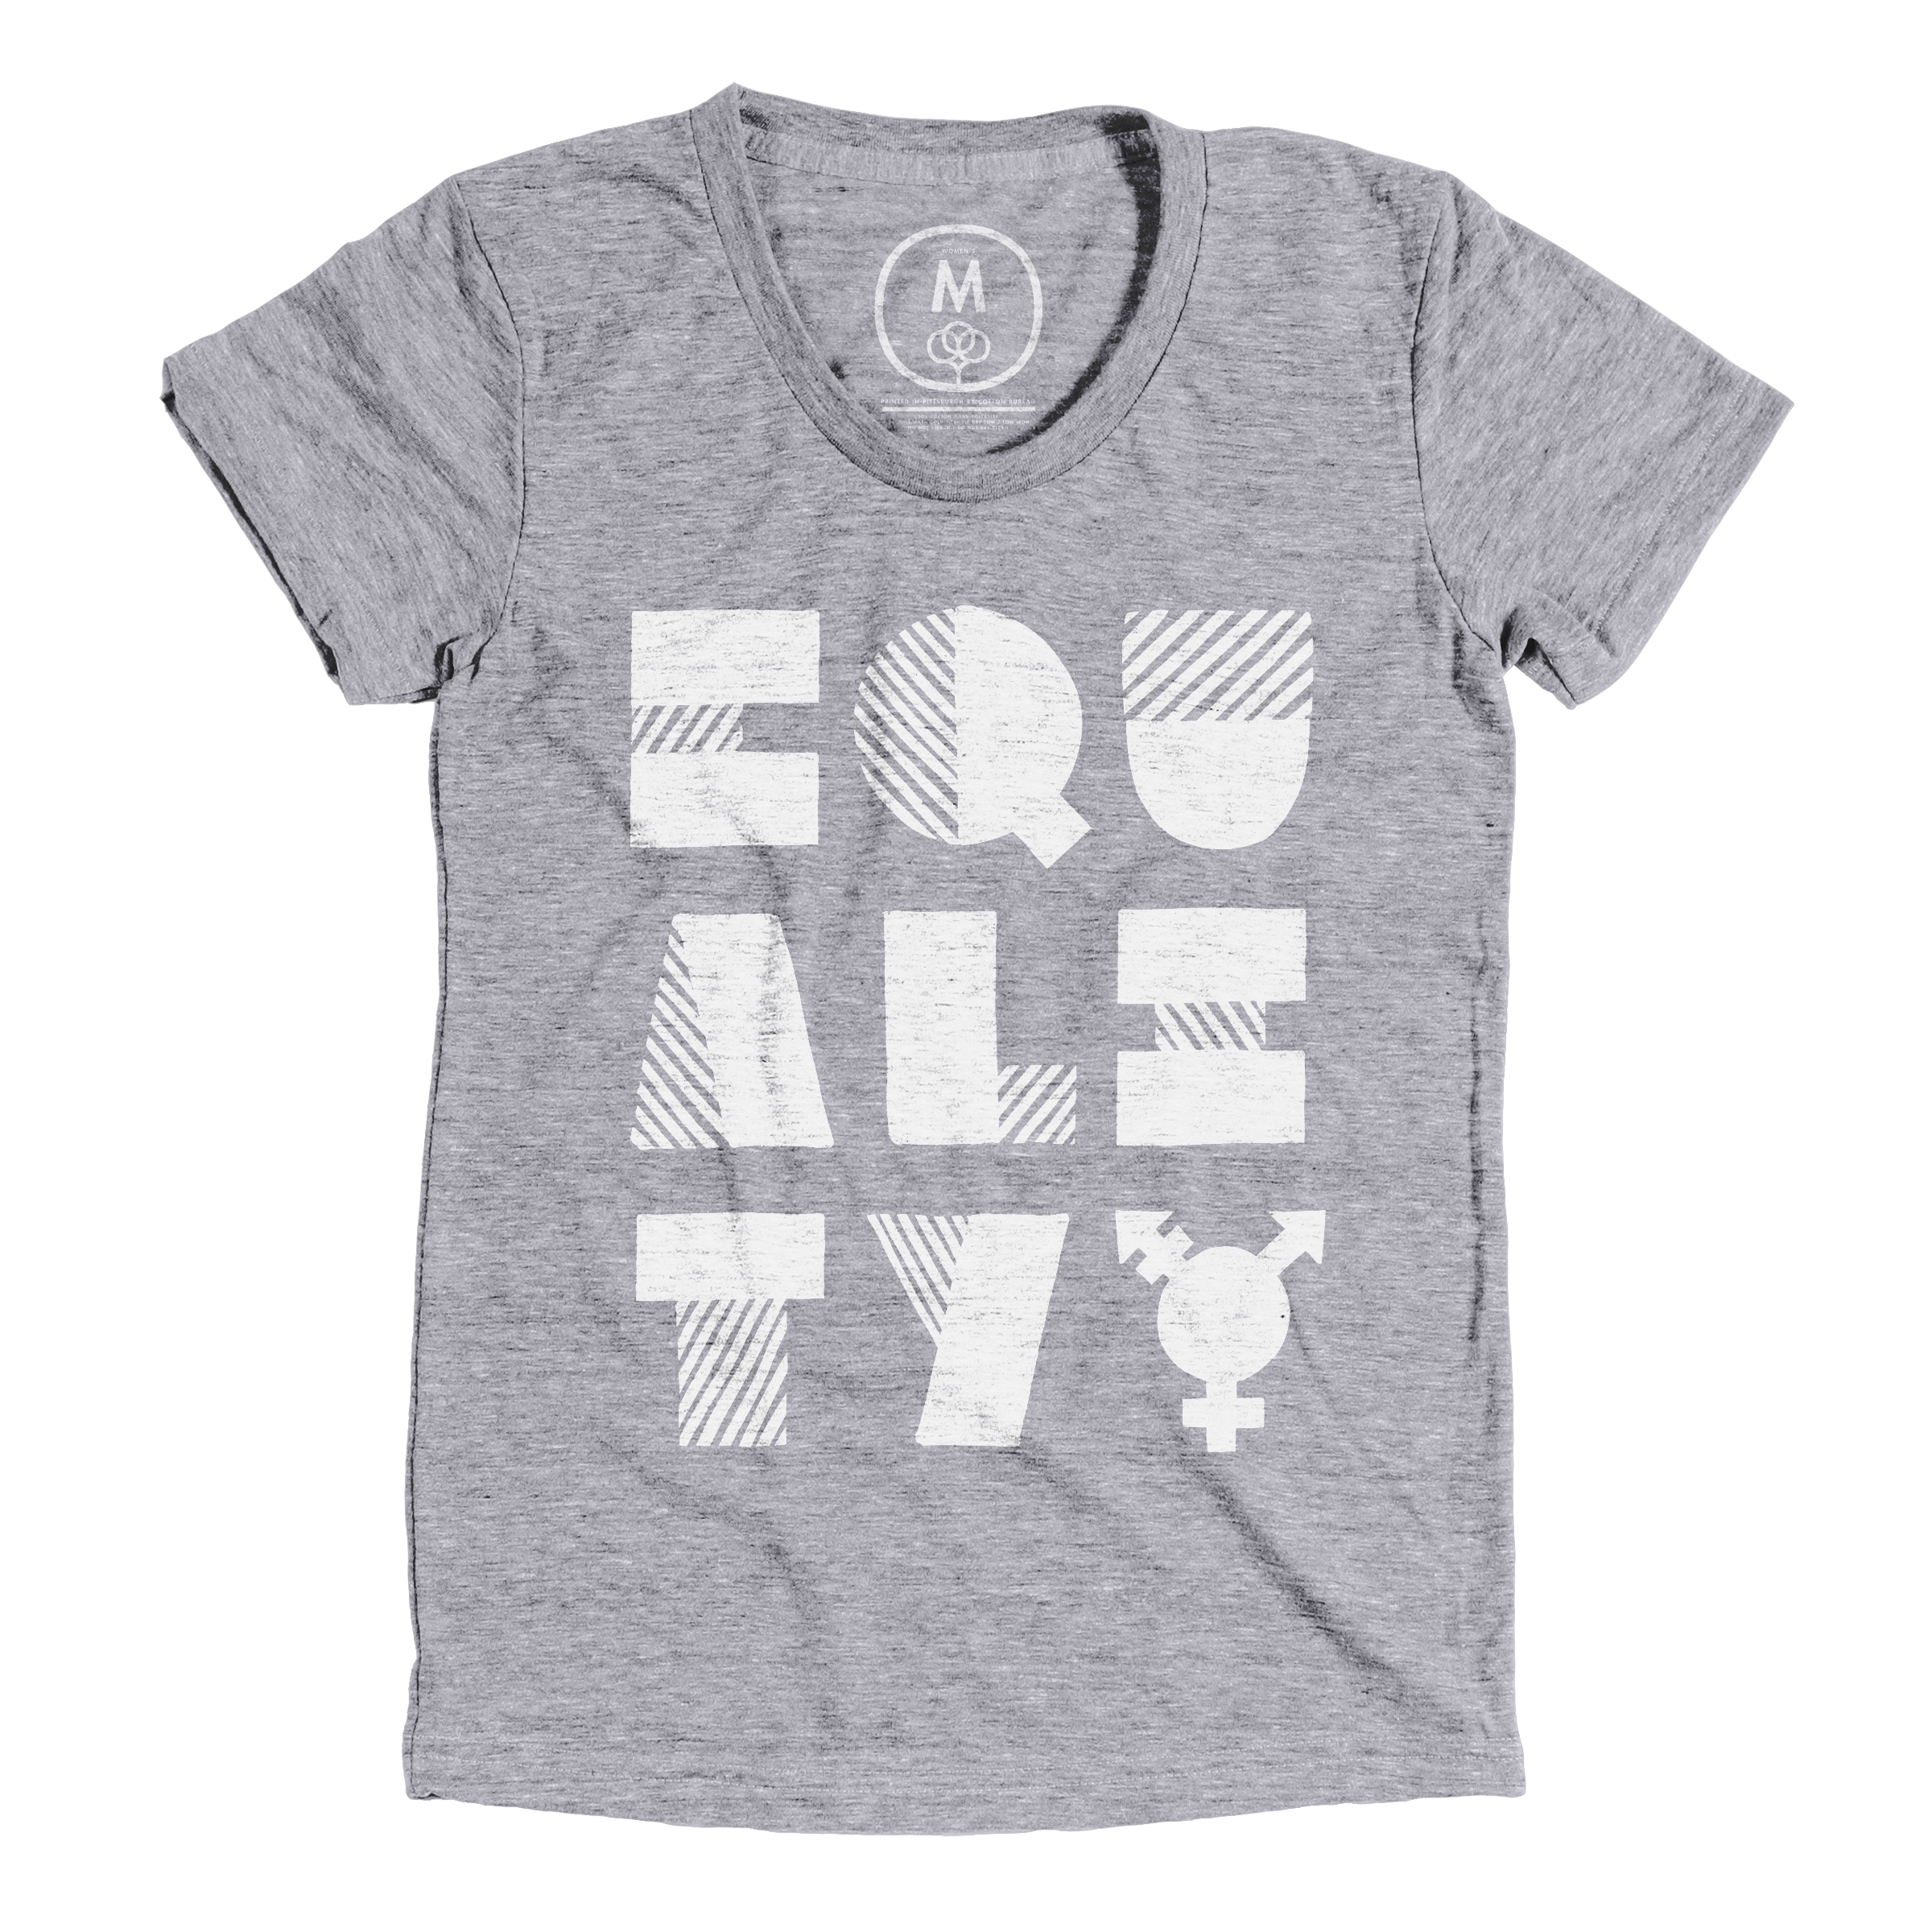 We're All Equal Premium Heather (Women's)